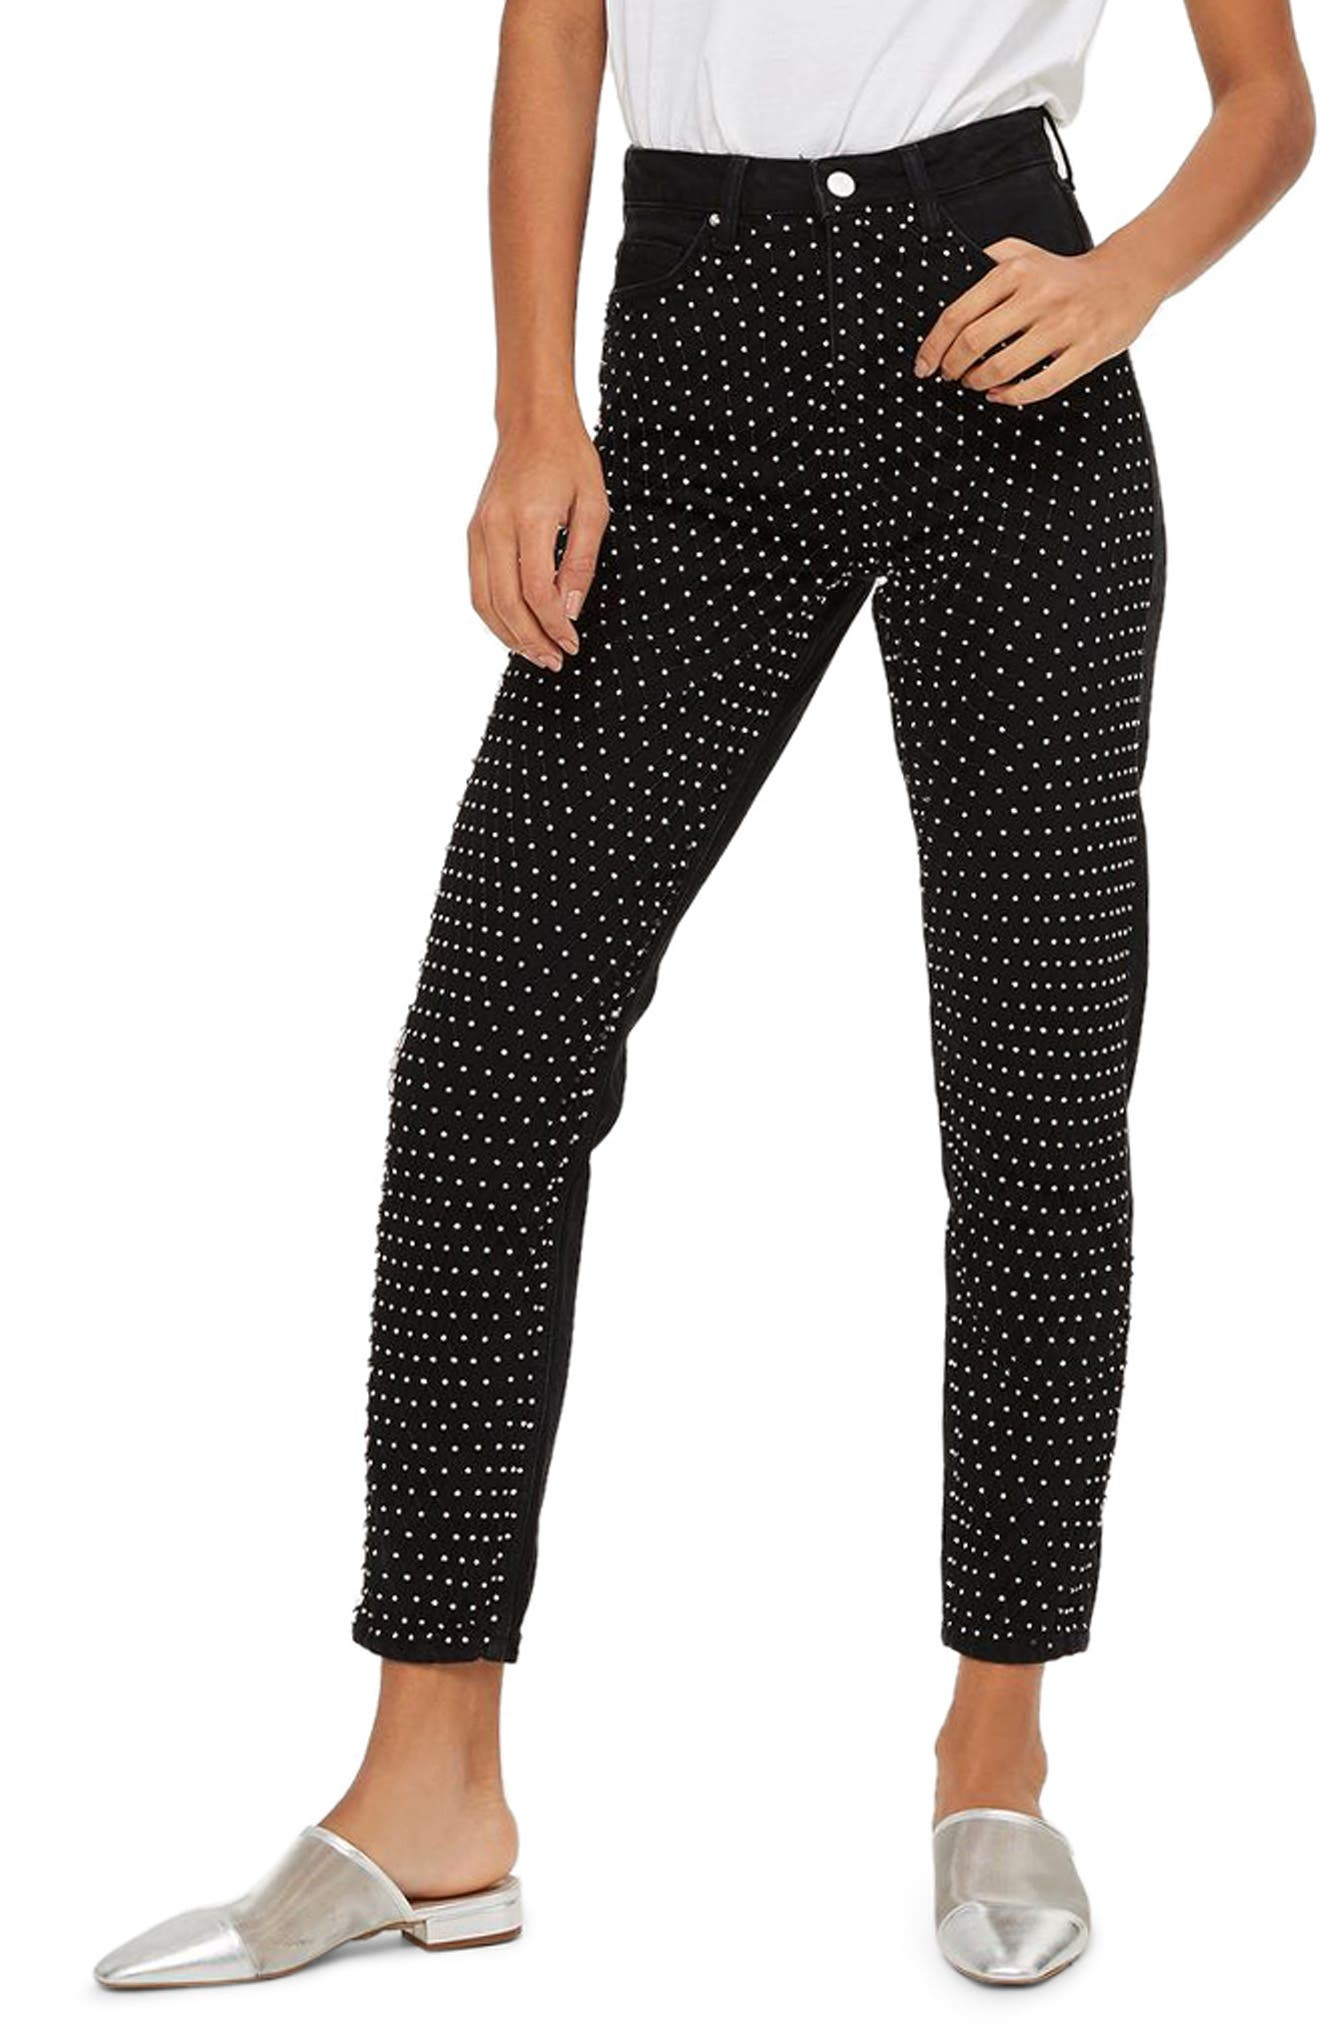 Limited Edition Diamante Fishnet Mom Jeans,                         Main,                         color, Black